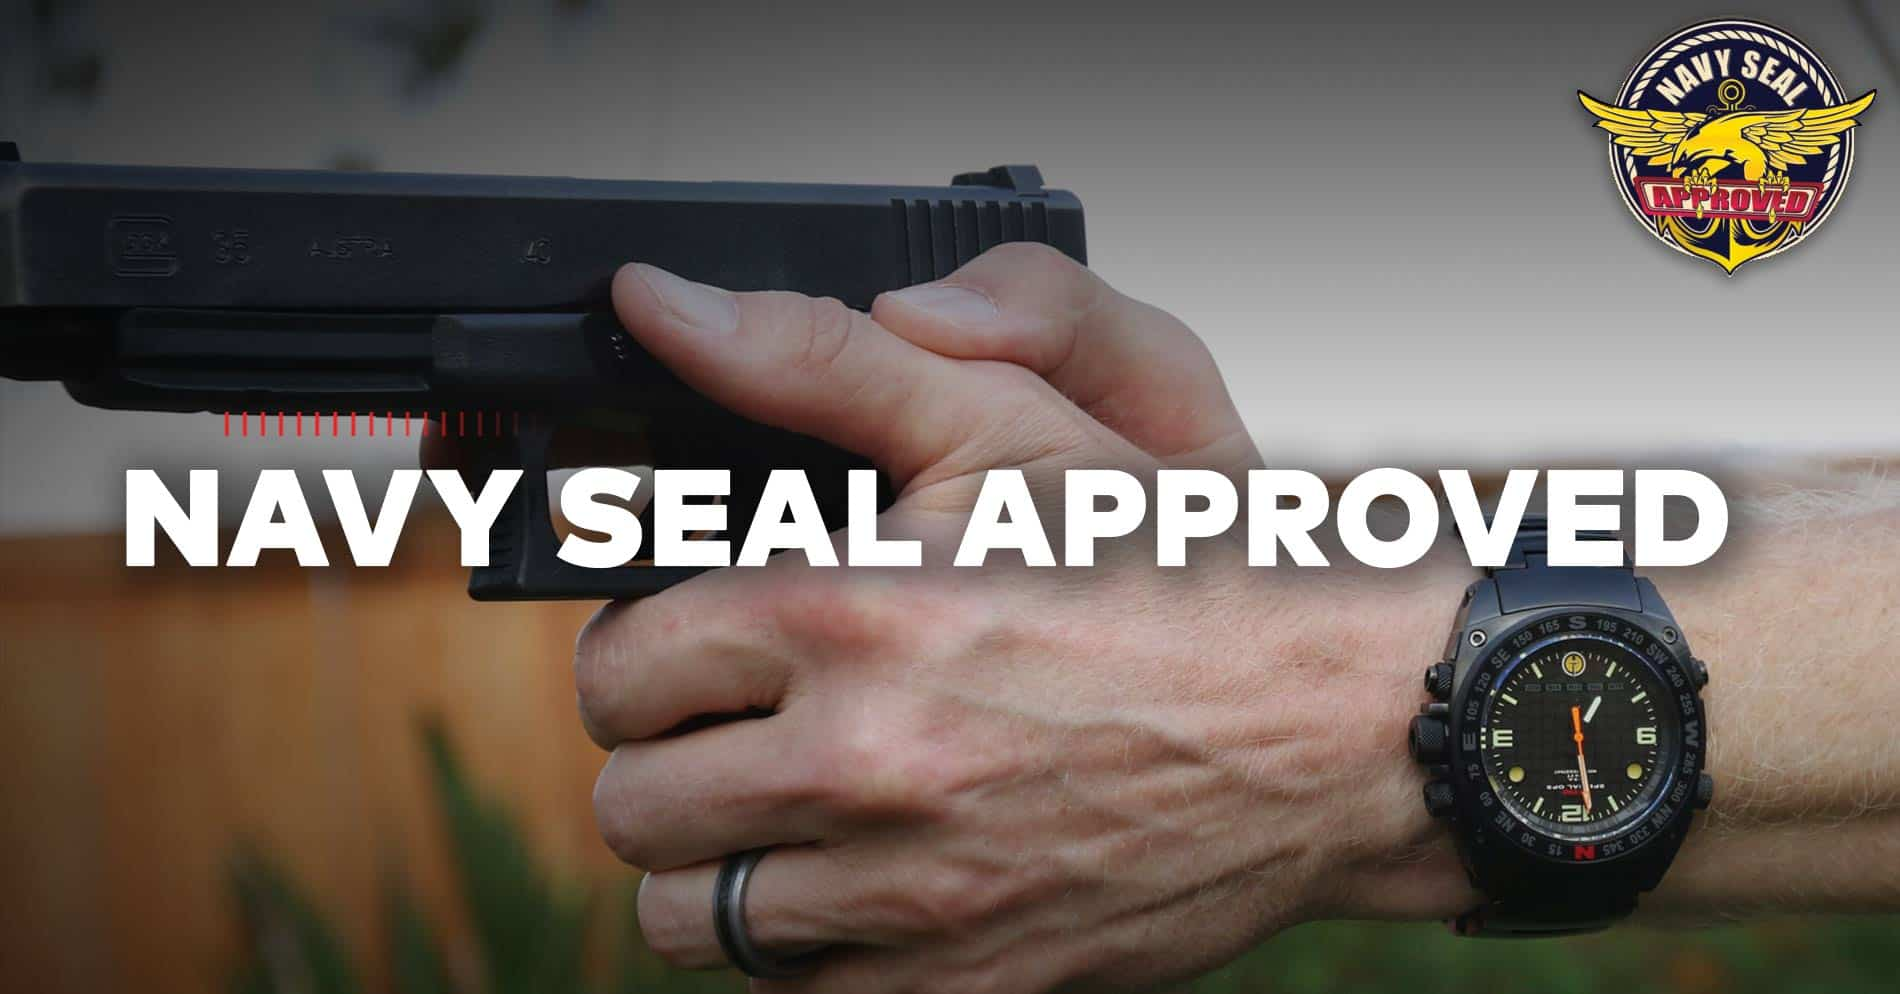 Chris Sajnog MTM Silencer Watch Navy SEAL Approved